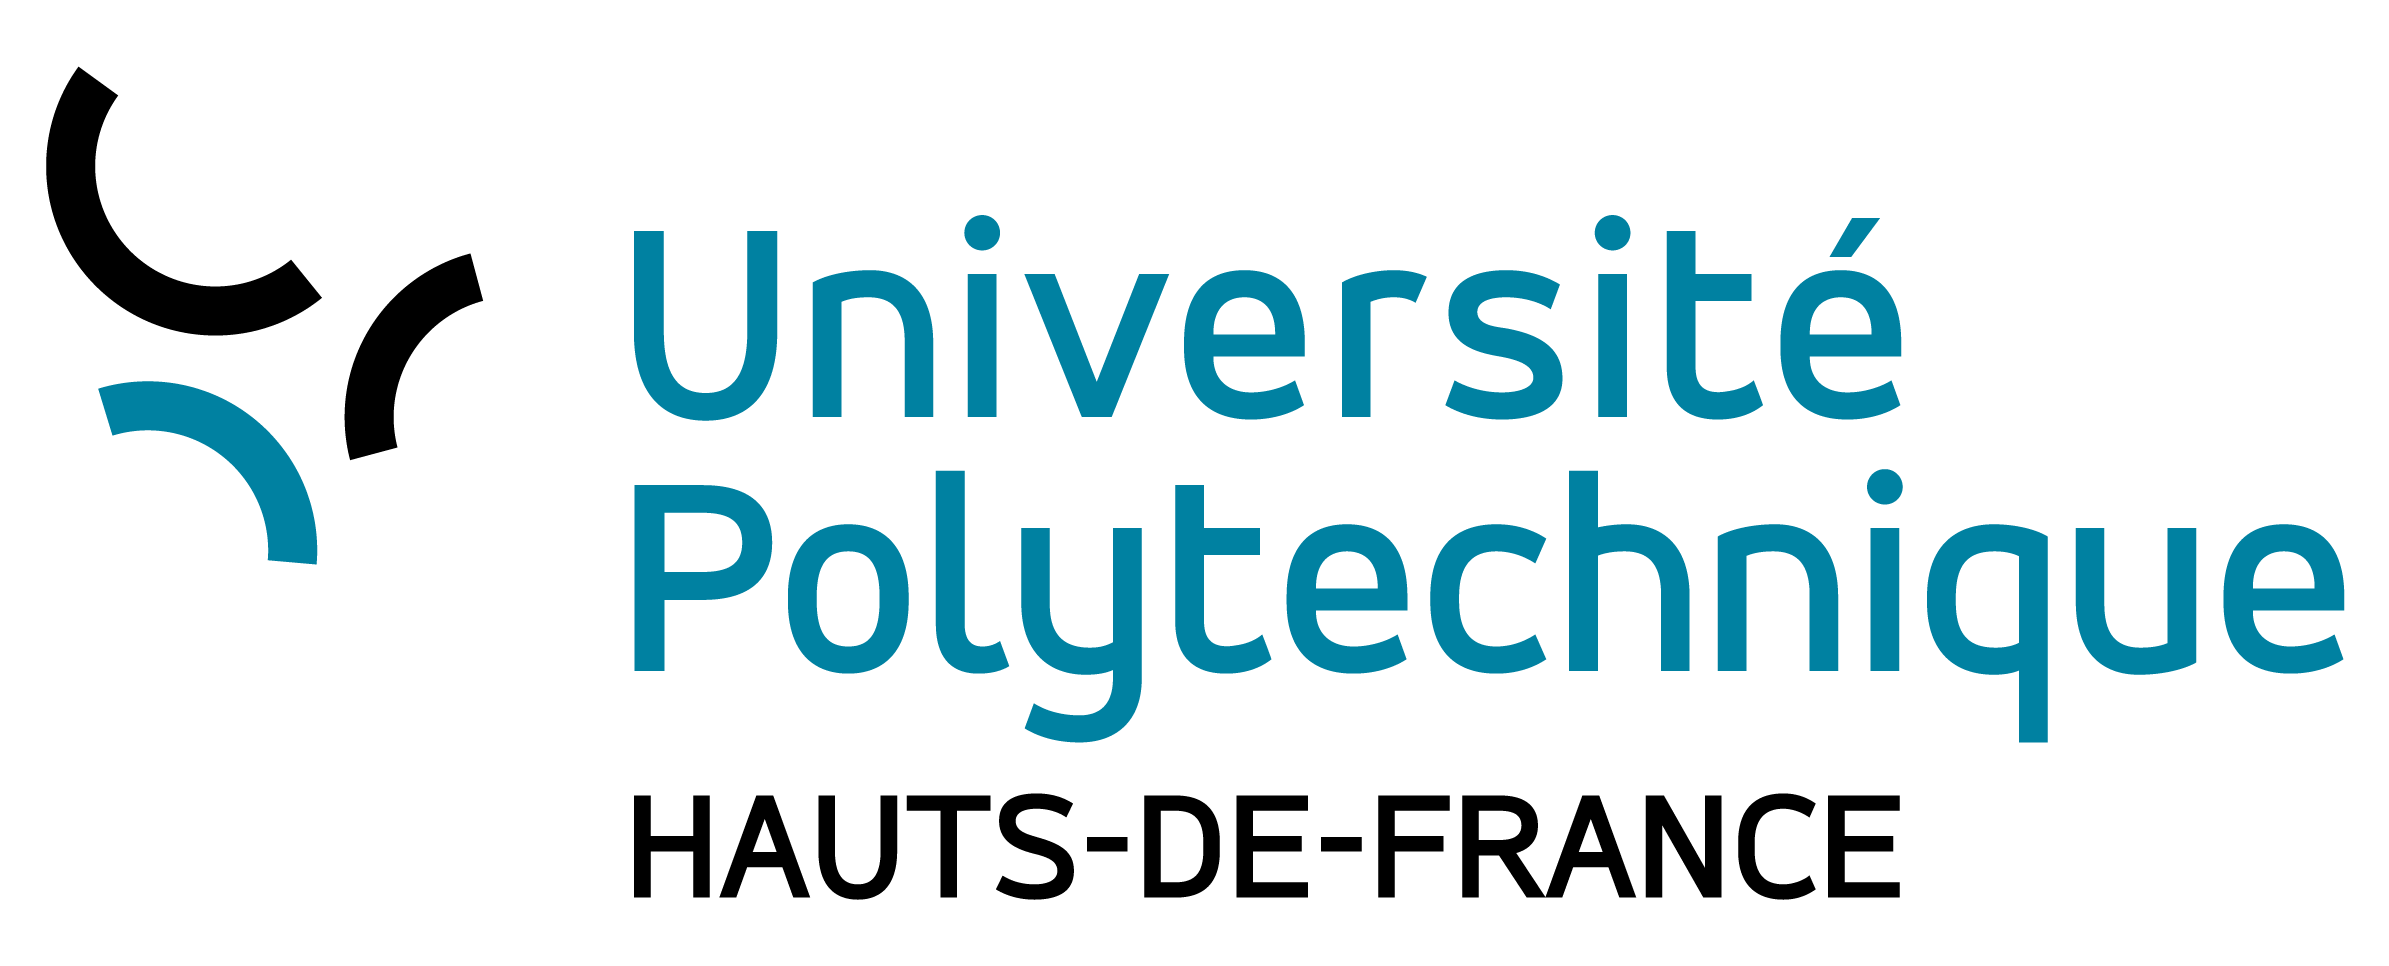 universit u00e9 polytechnique hauts de france